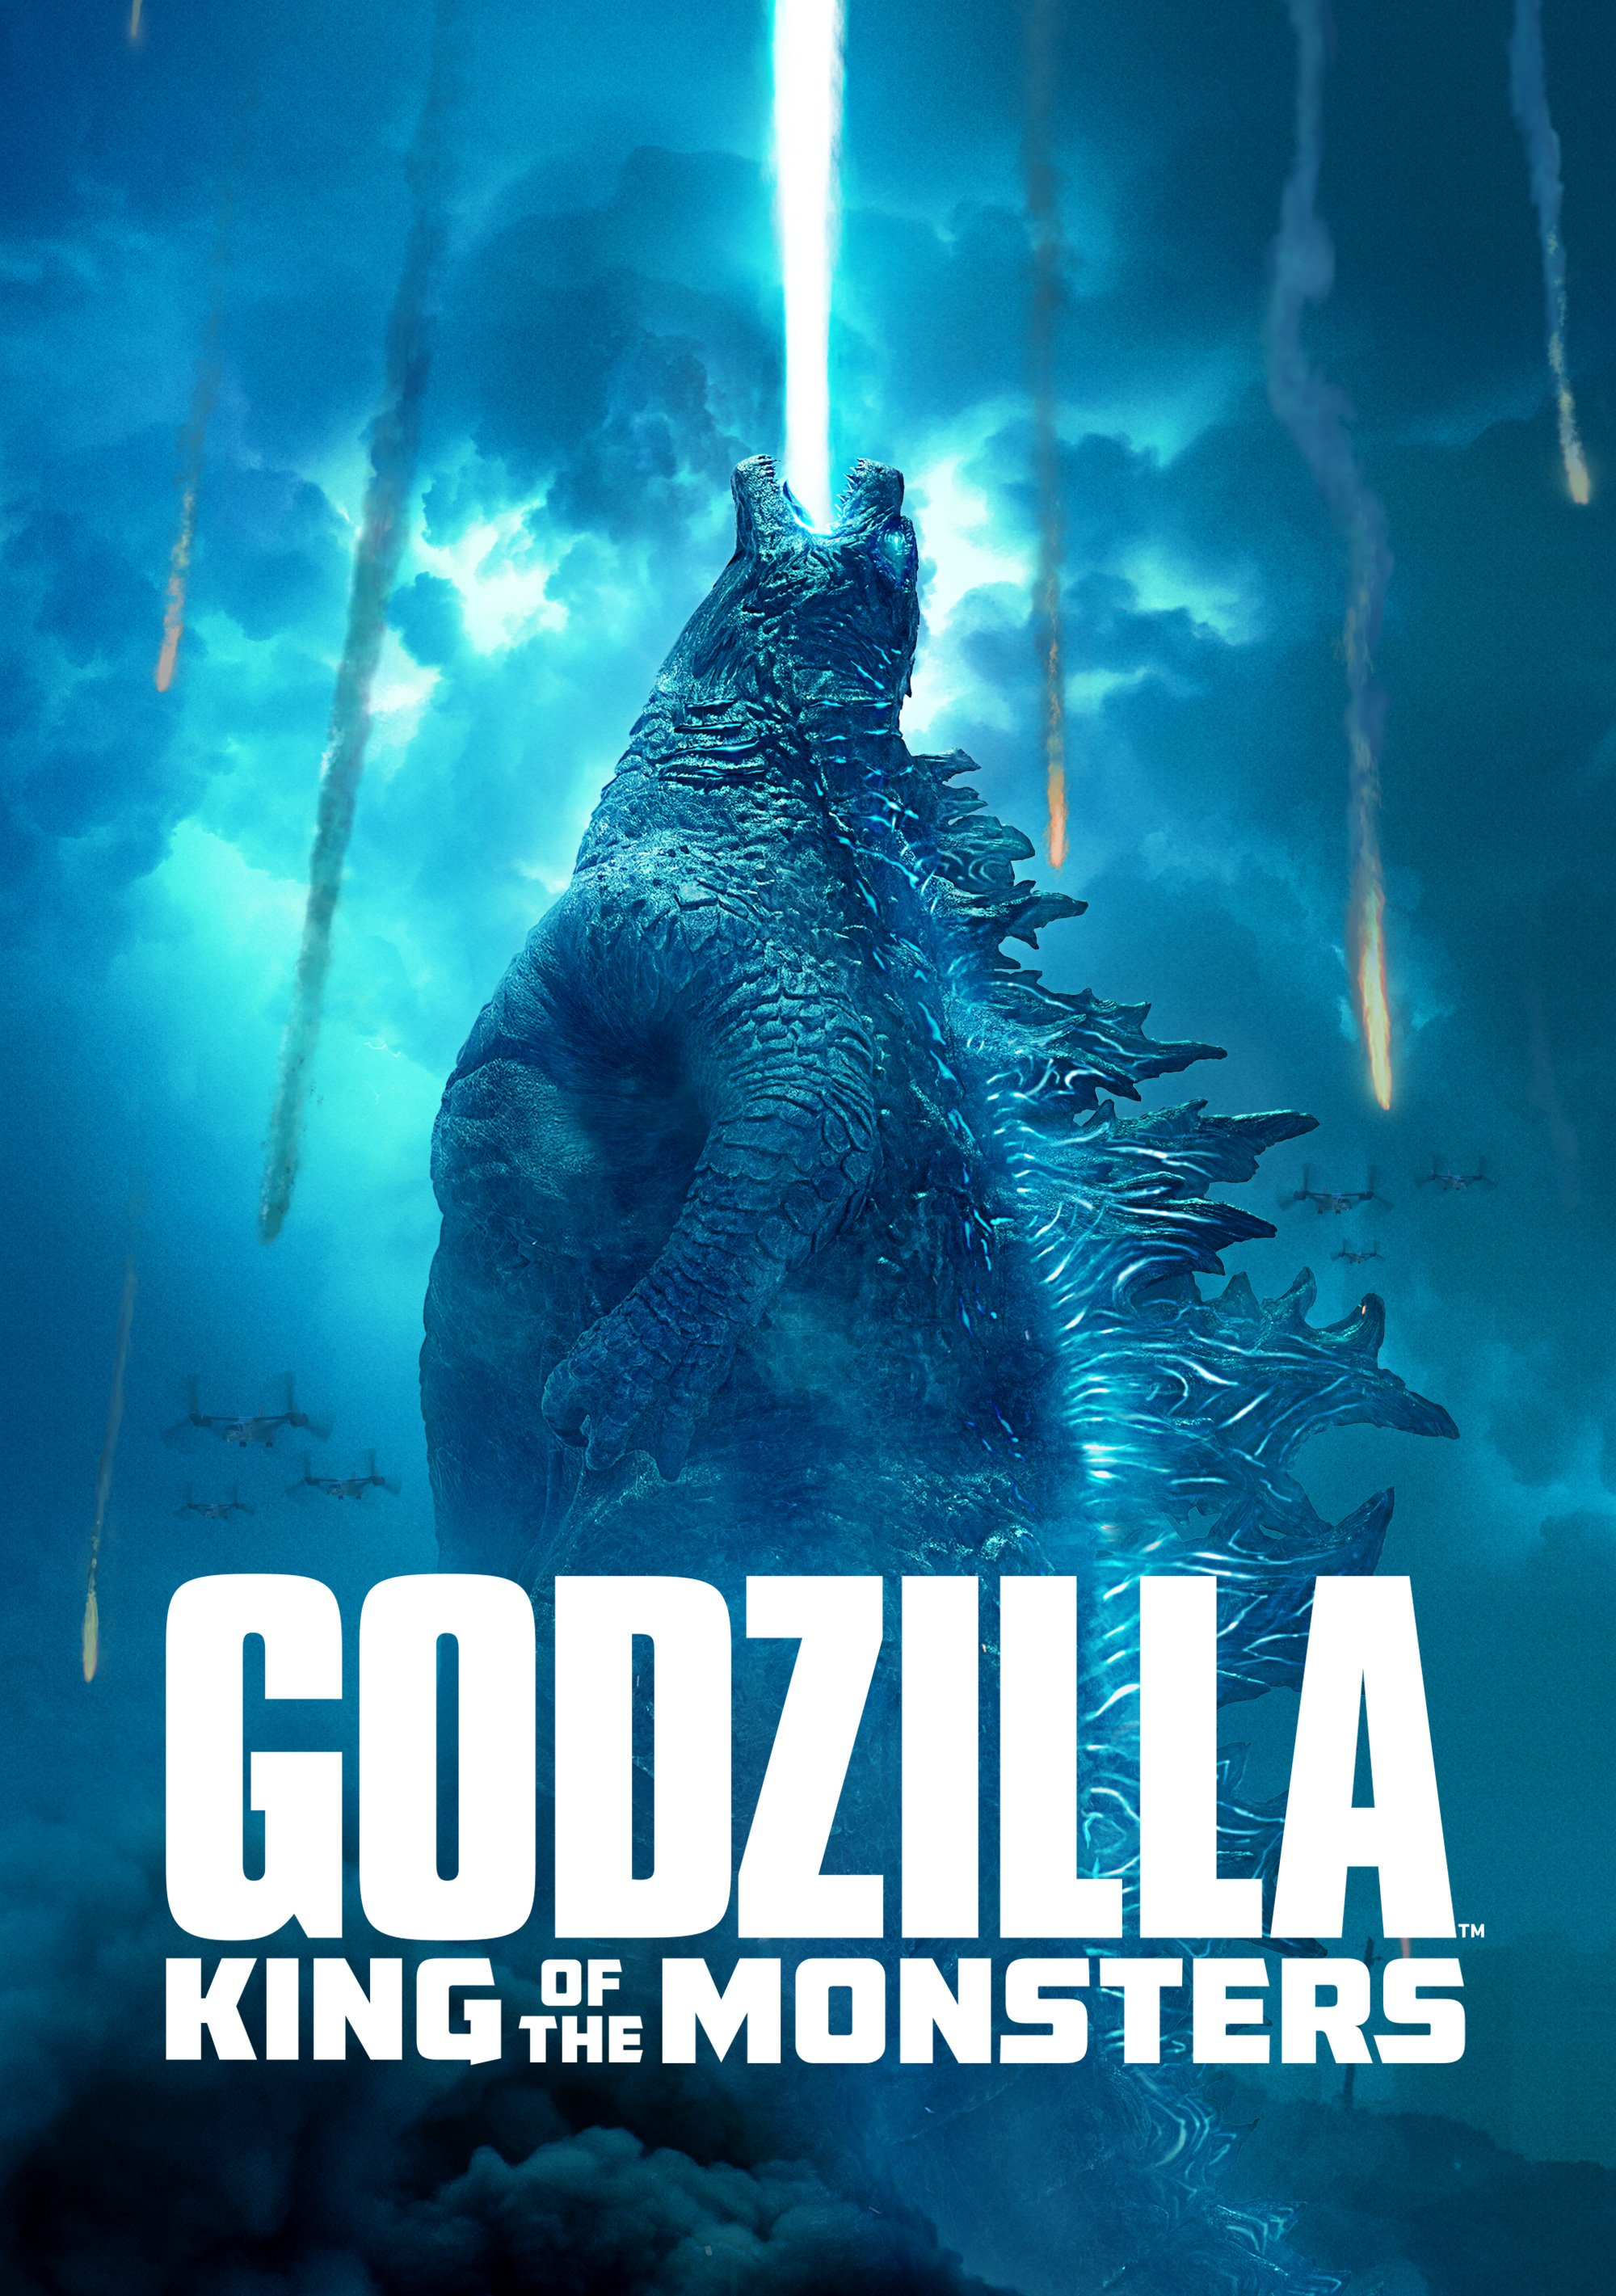 Godzilla: King of the Monsters | Buy, Rent or Watch on FandangoNOW